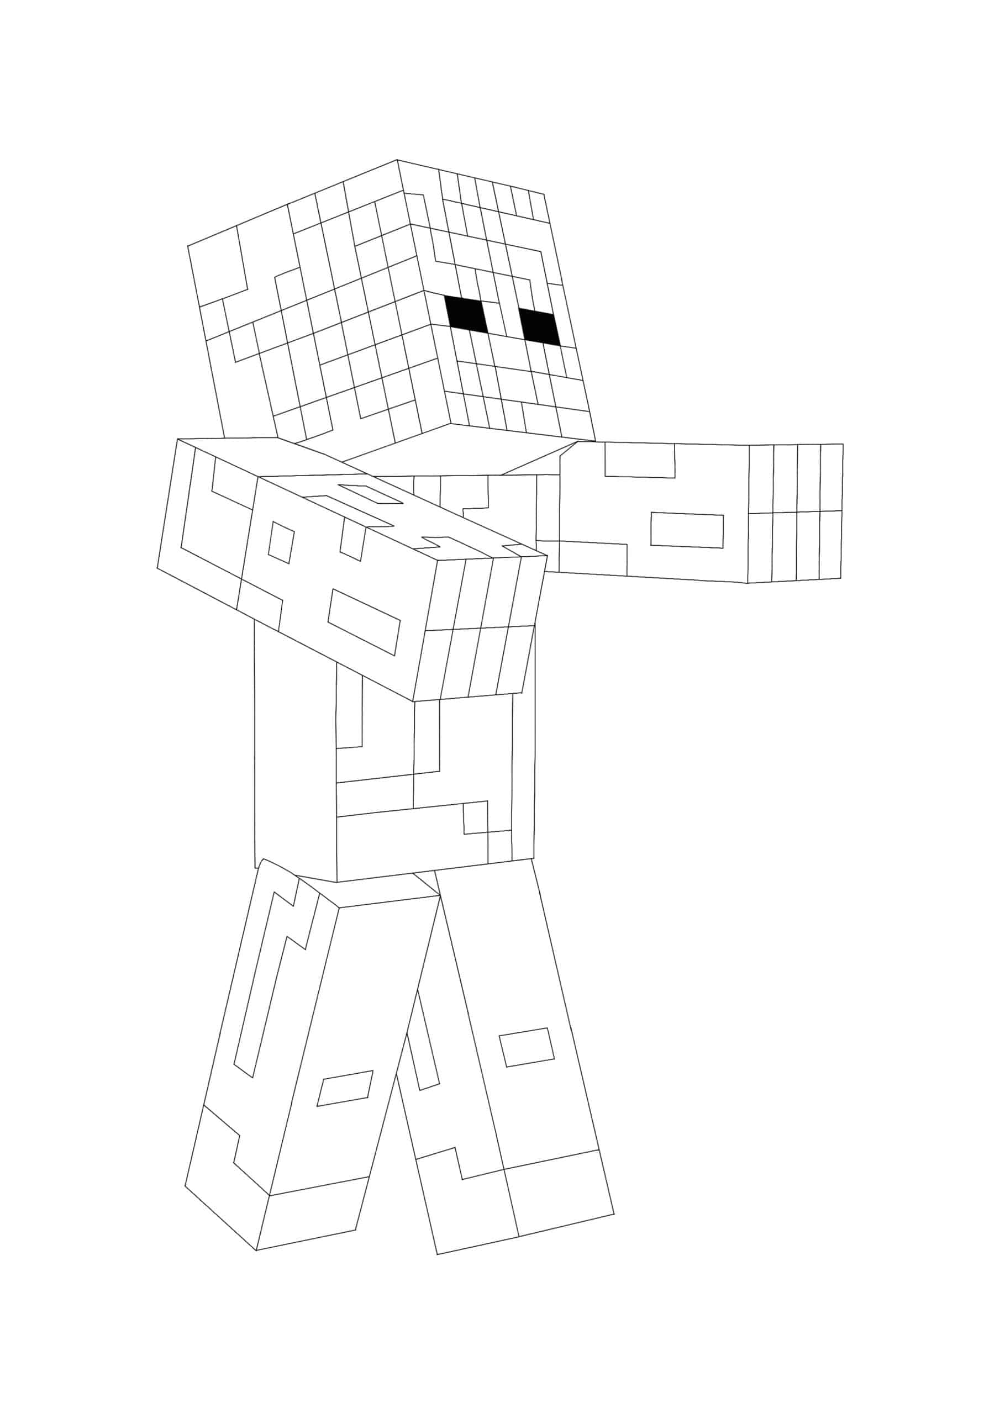 Minecraft Zombie Coloring Pages 2 Free Coloring Sheets 2021 In 2021 Free Coloring Sheets Minecraft Coloring Pages Coloring Pages